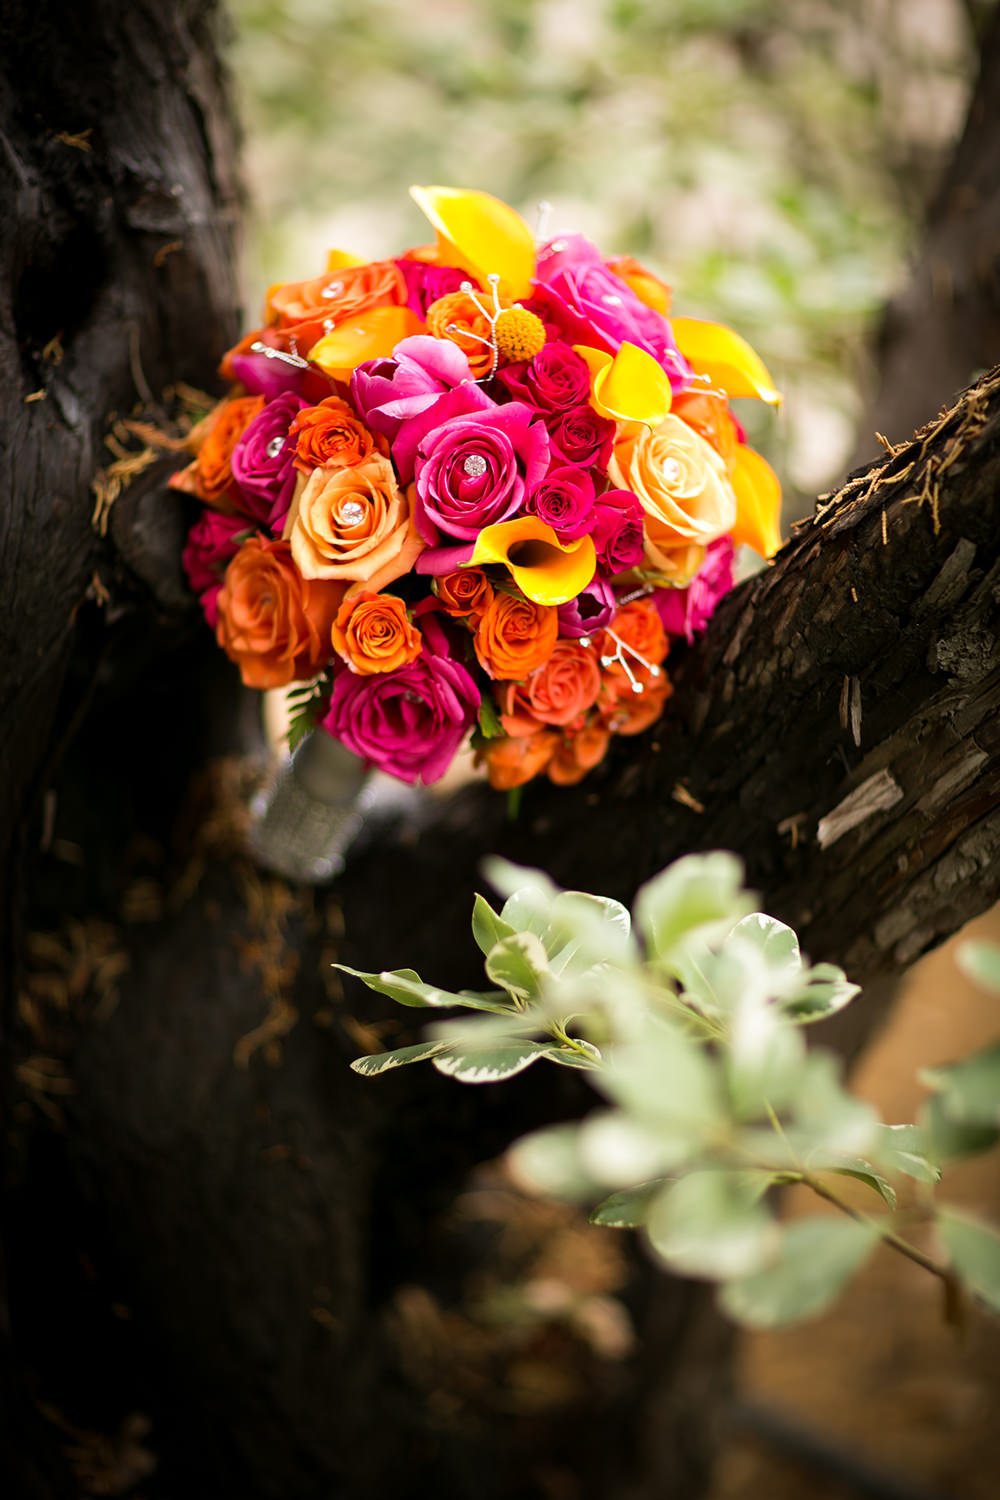 stunning bouquet image at leoness cellars